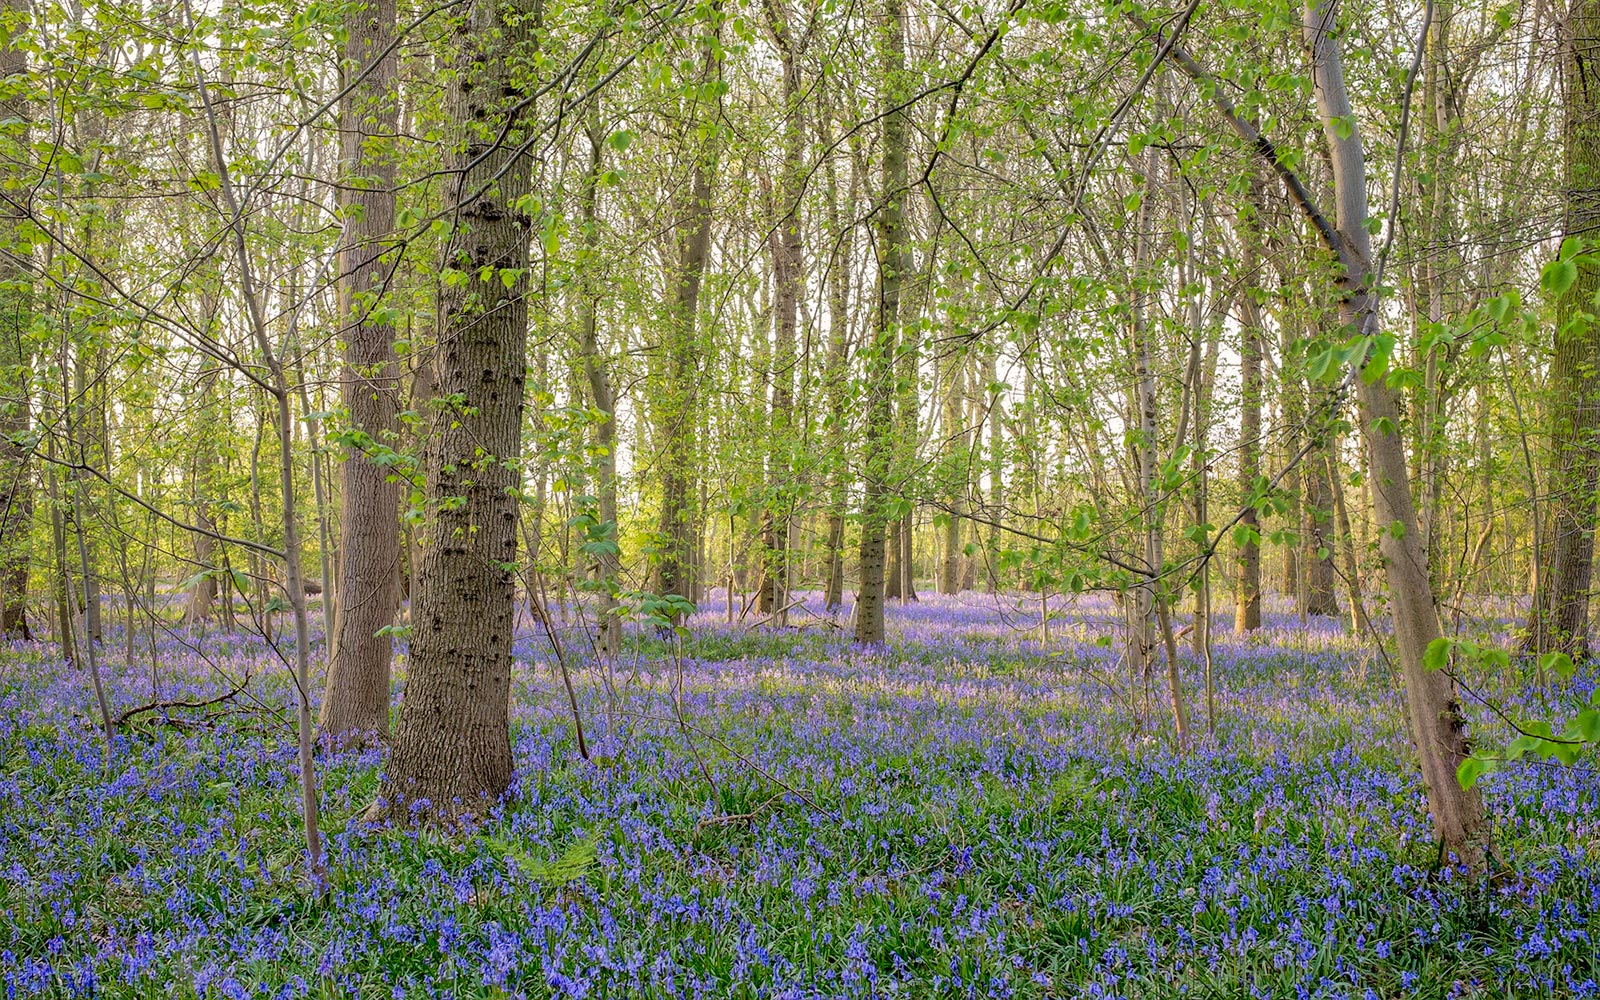 Blubells in mixed woodland, Rougemont Woods - Fuji X-E2 and 23mm lens